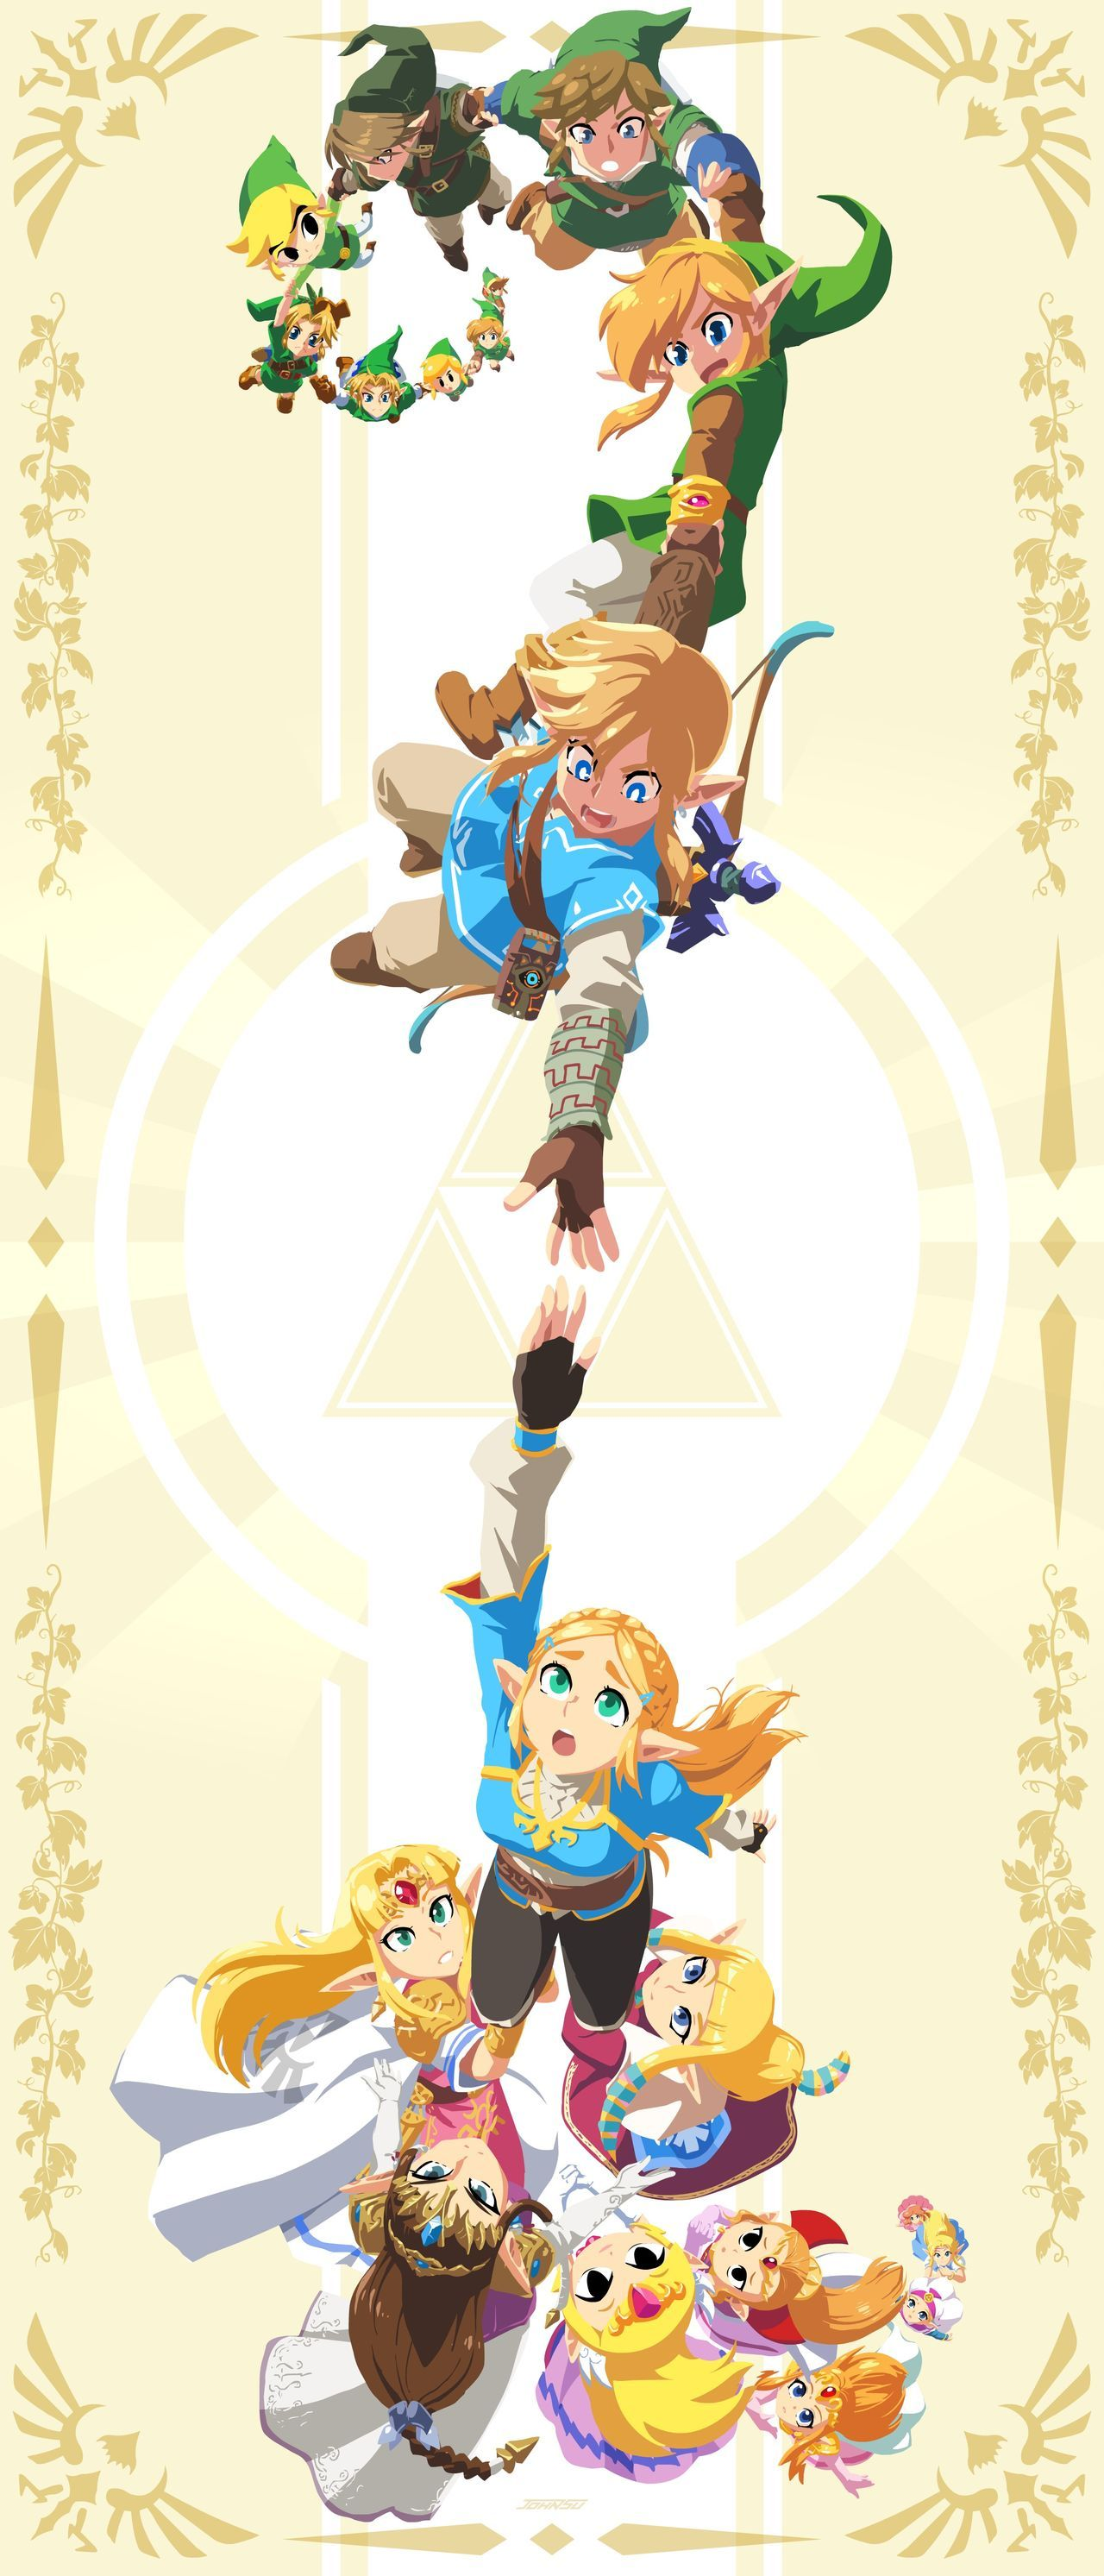 John Your, Blizzard, pays homanaje to The Legend of Zelda with an illustration special